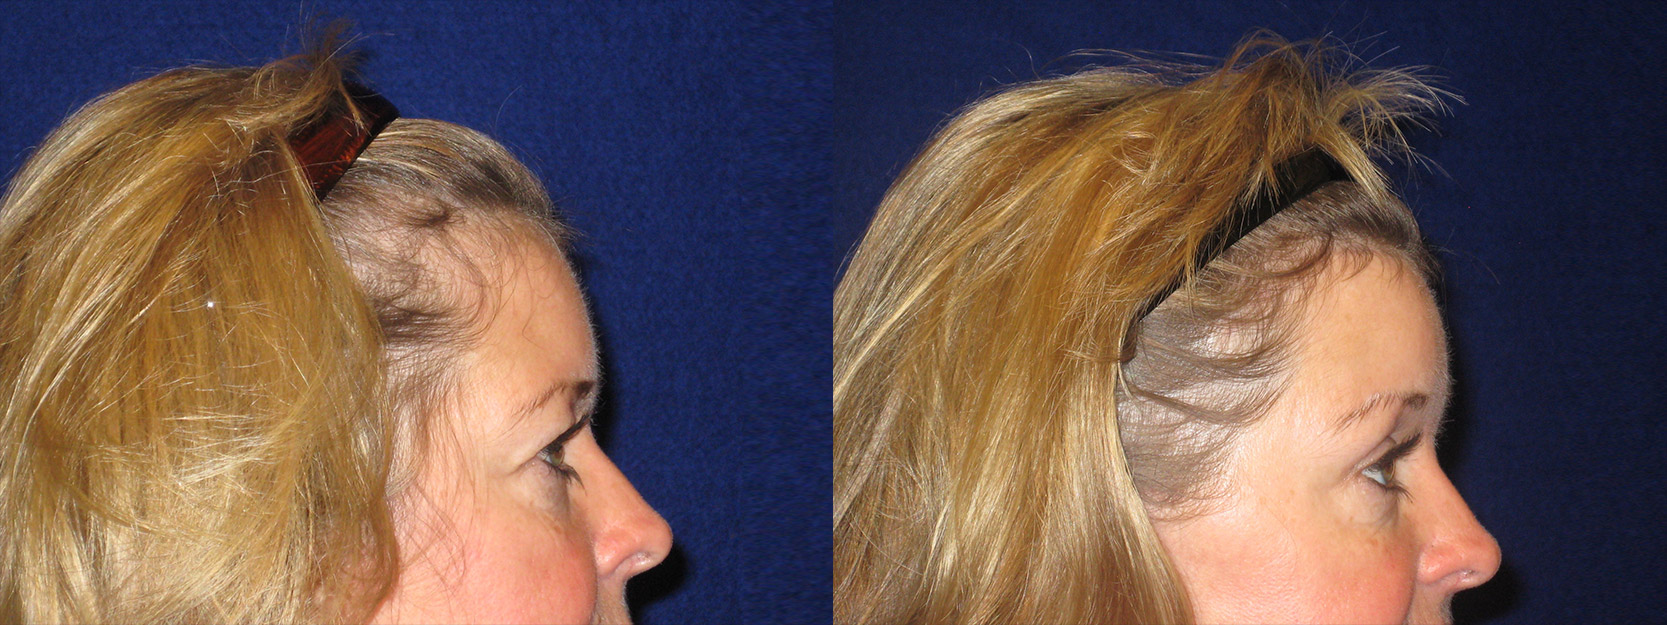 Right Profile View - Browlift with Upper Eyelid Surgery